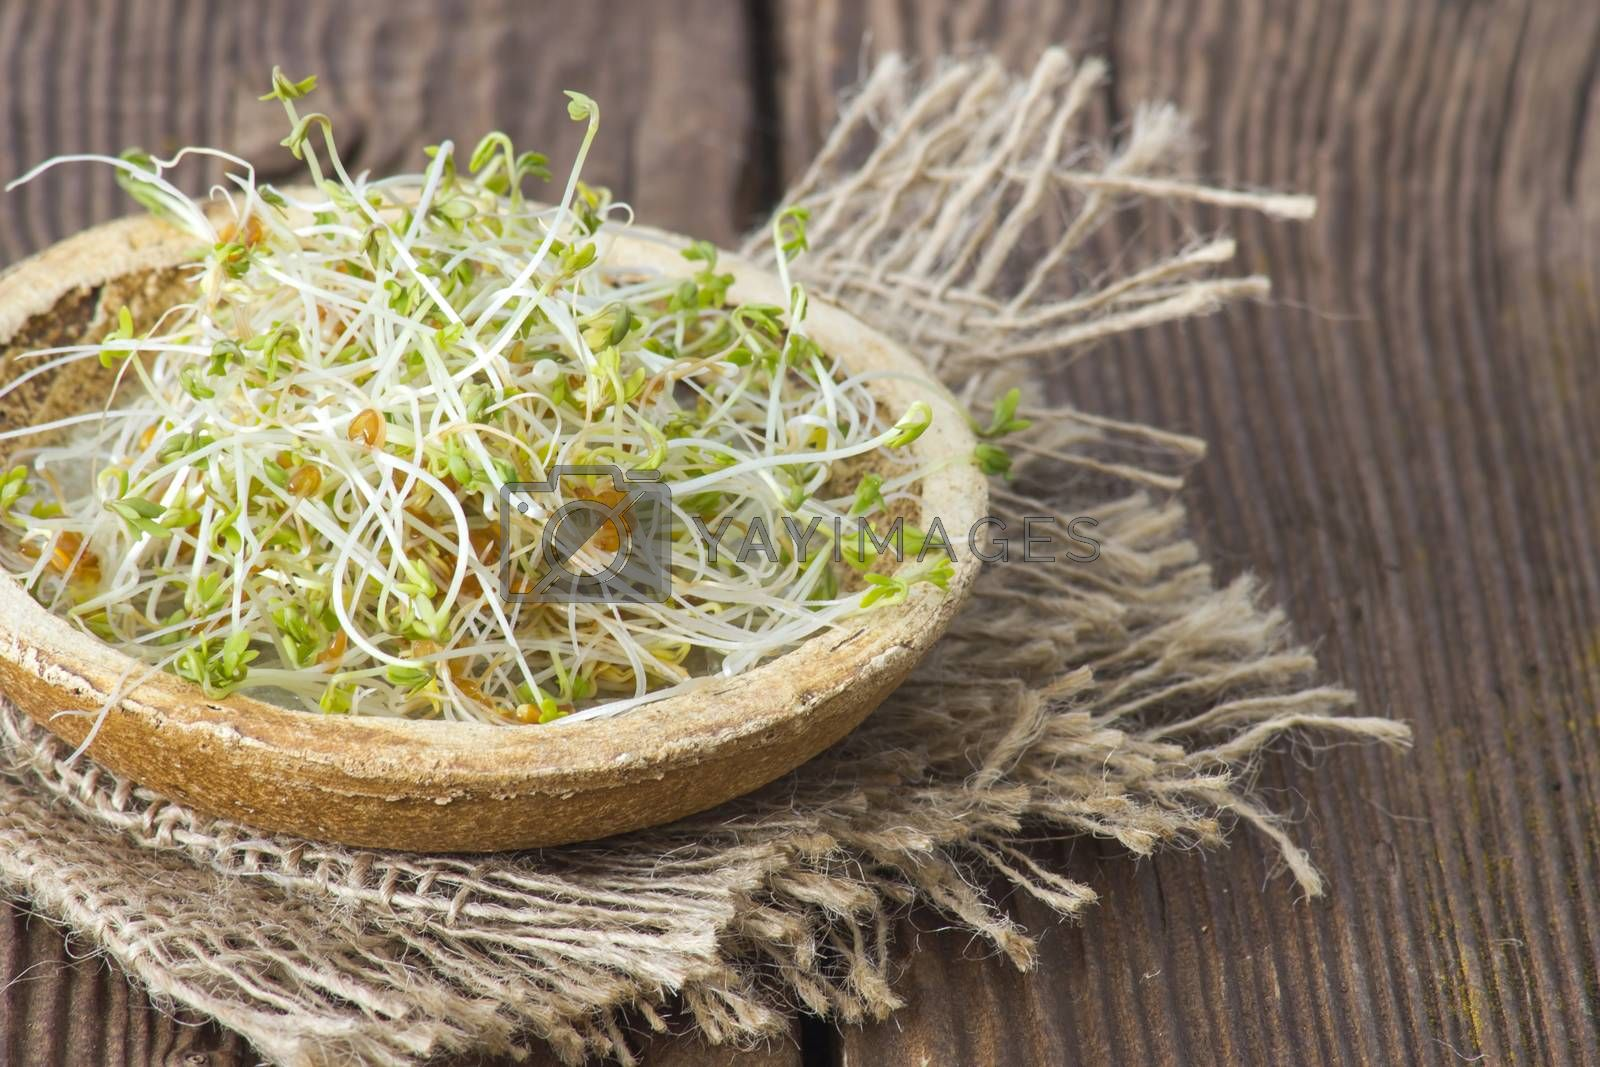 garden cress sprouts by miradrozdowski